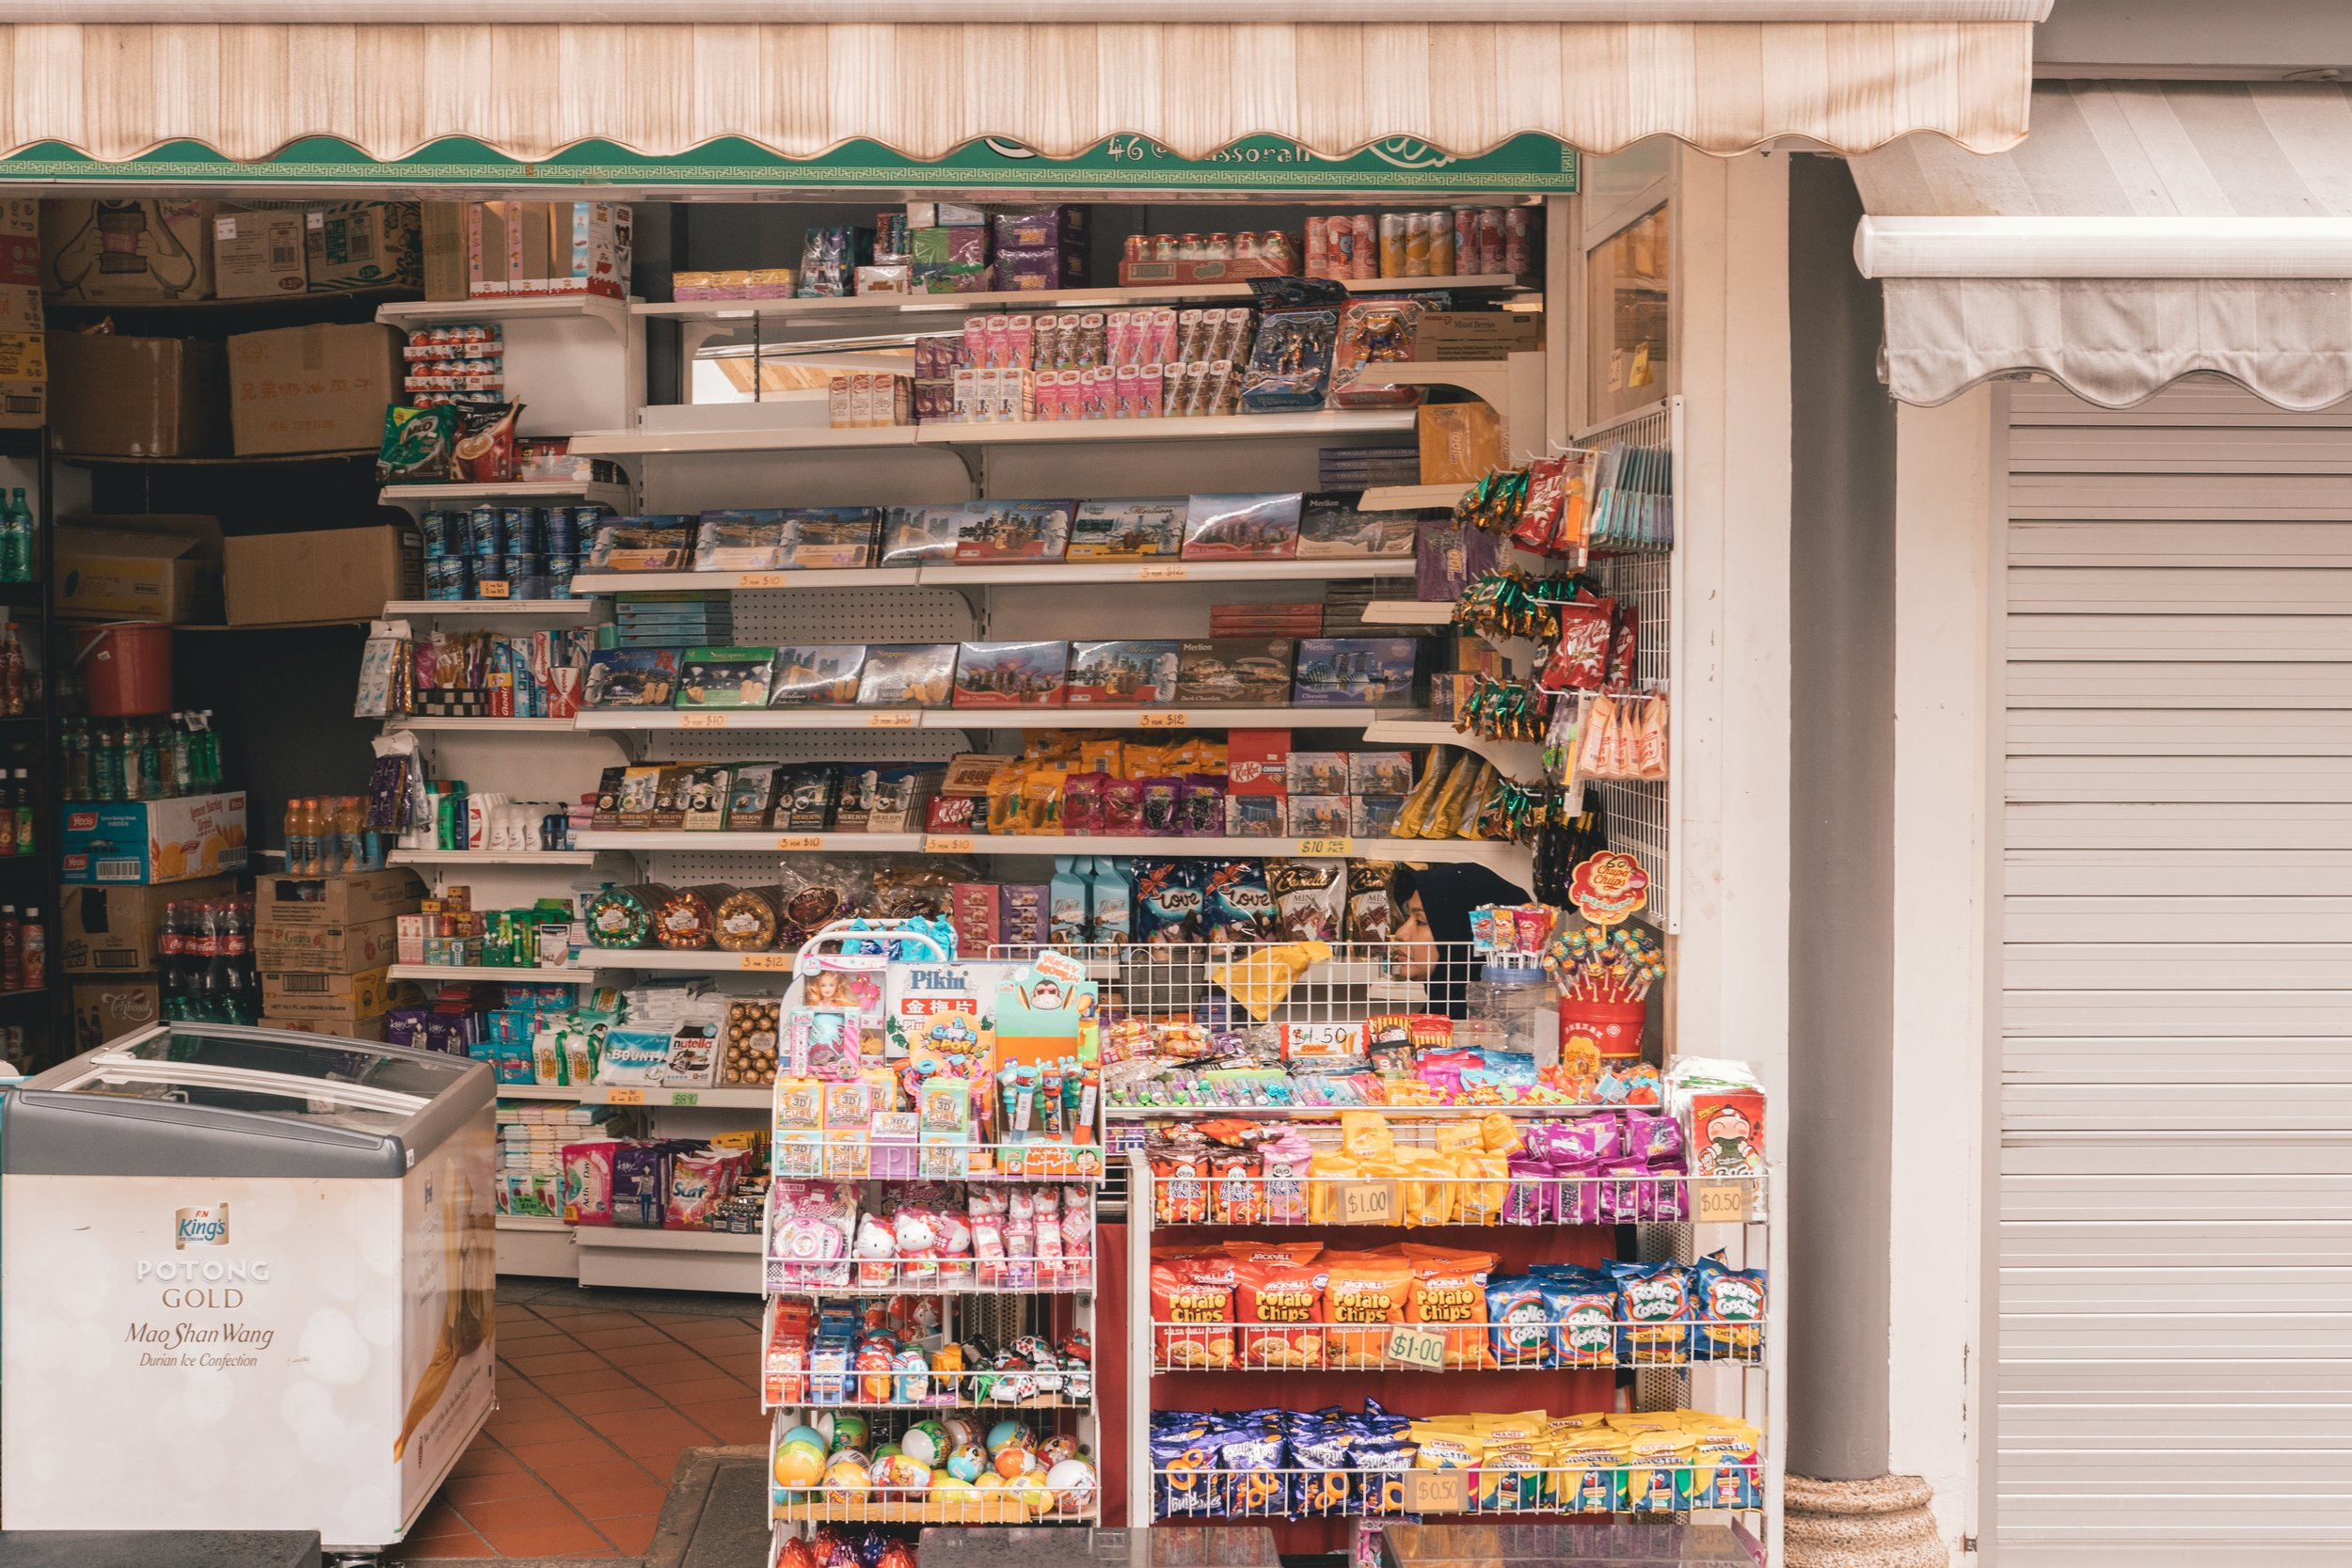 Tuck shop - Got a craving for something sweet or salty?  Or need something for the pantry? We may have what you need